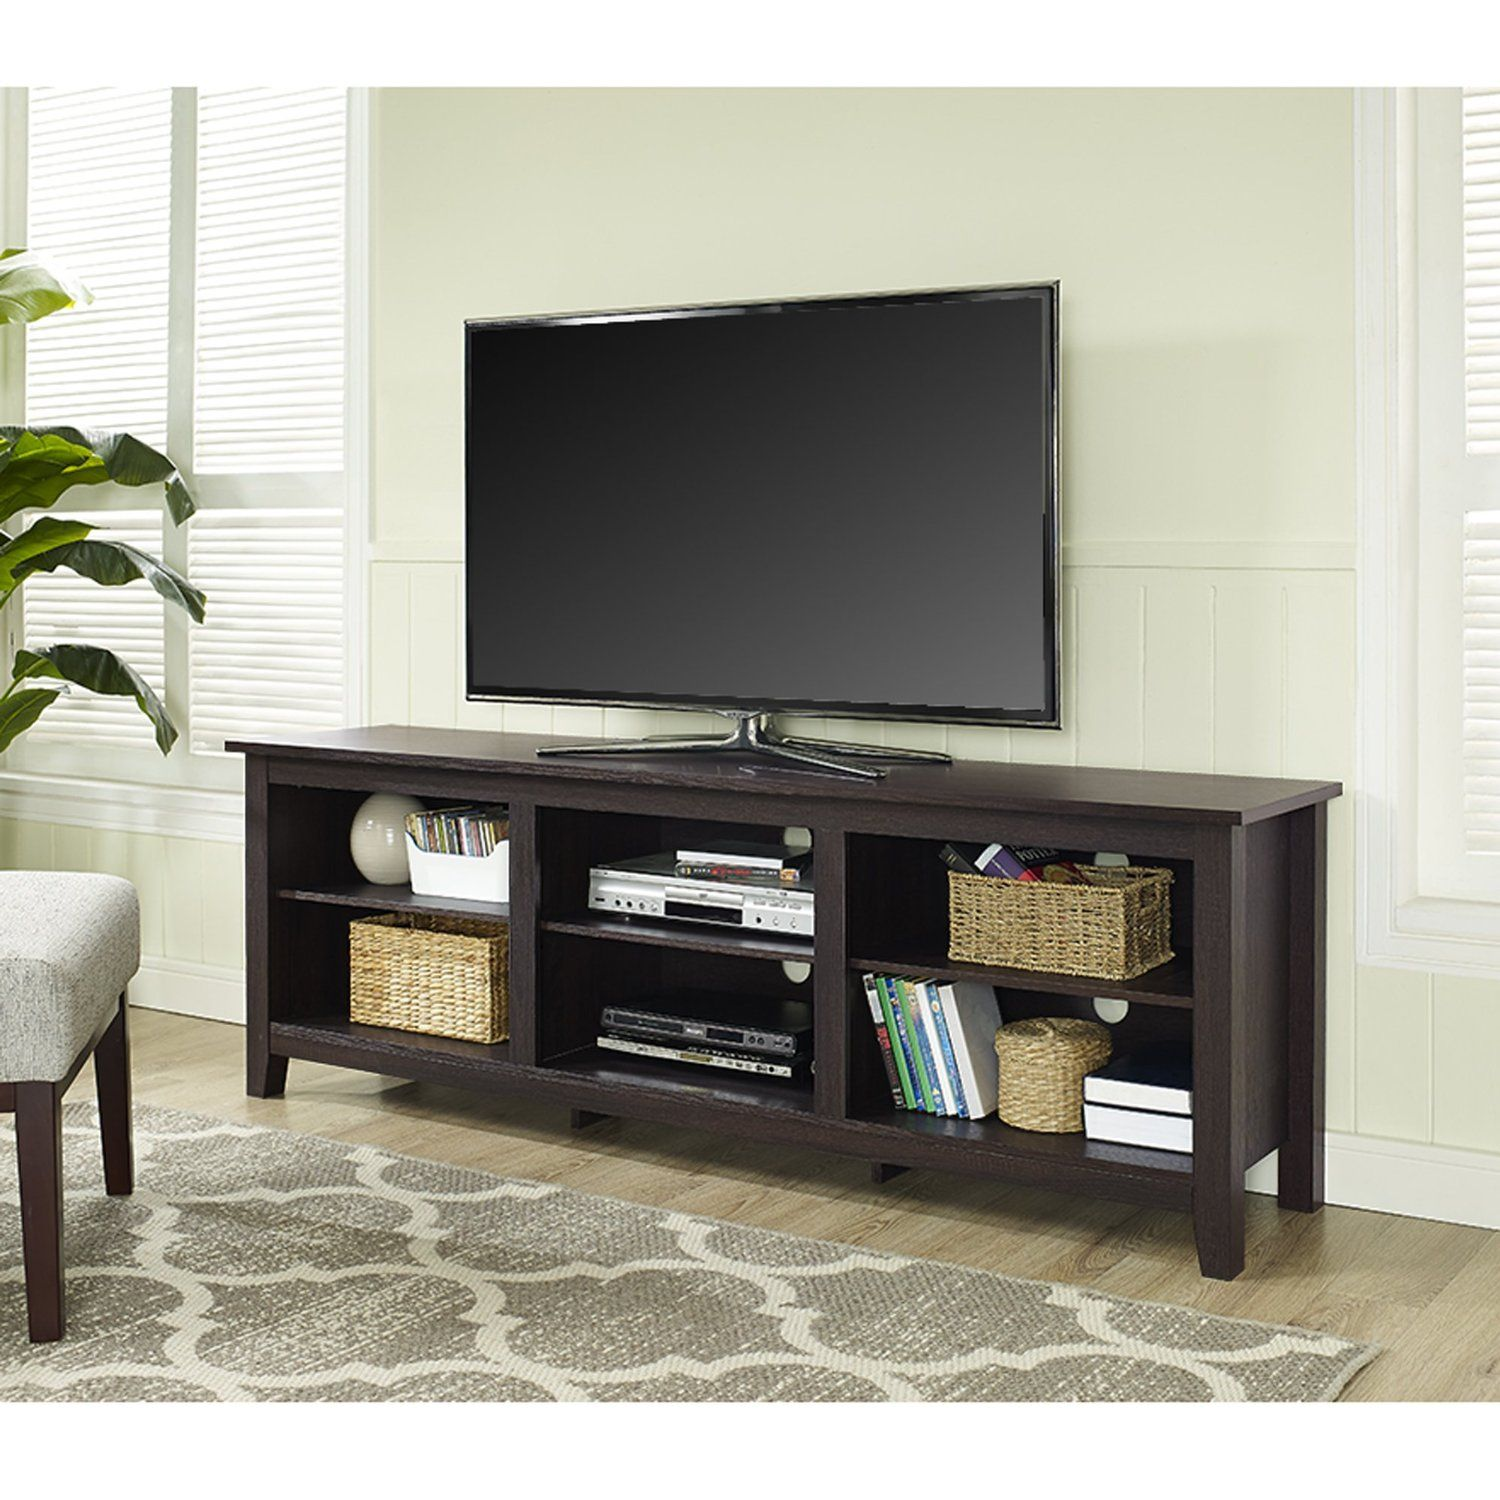 "Amazon WE Furniture 70"" Espresso Wood TV Stand Console Kitchen"